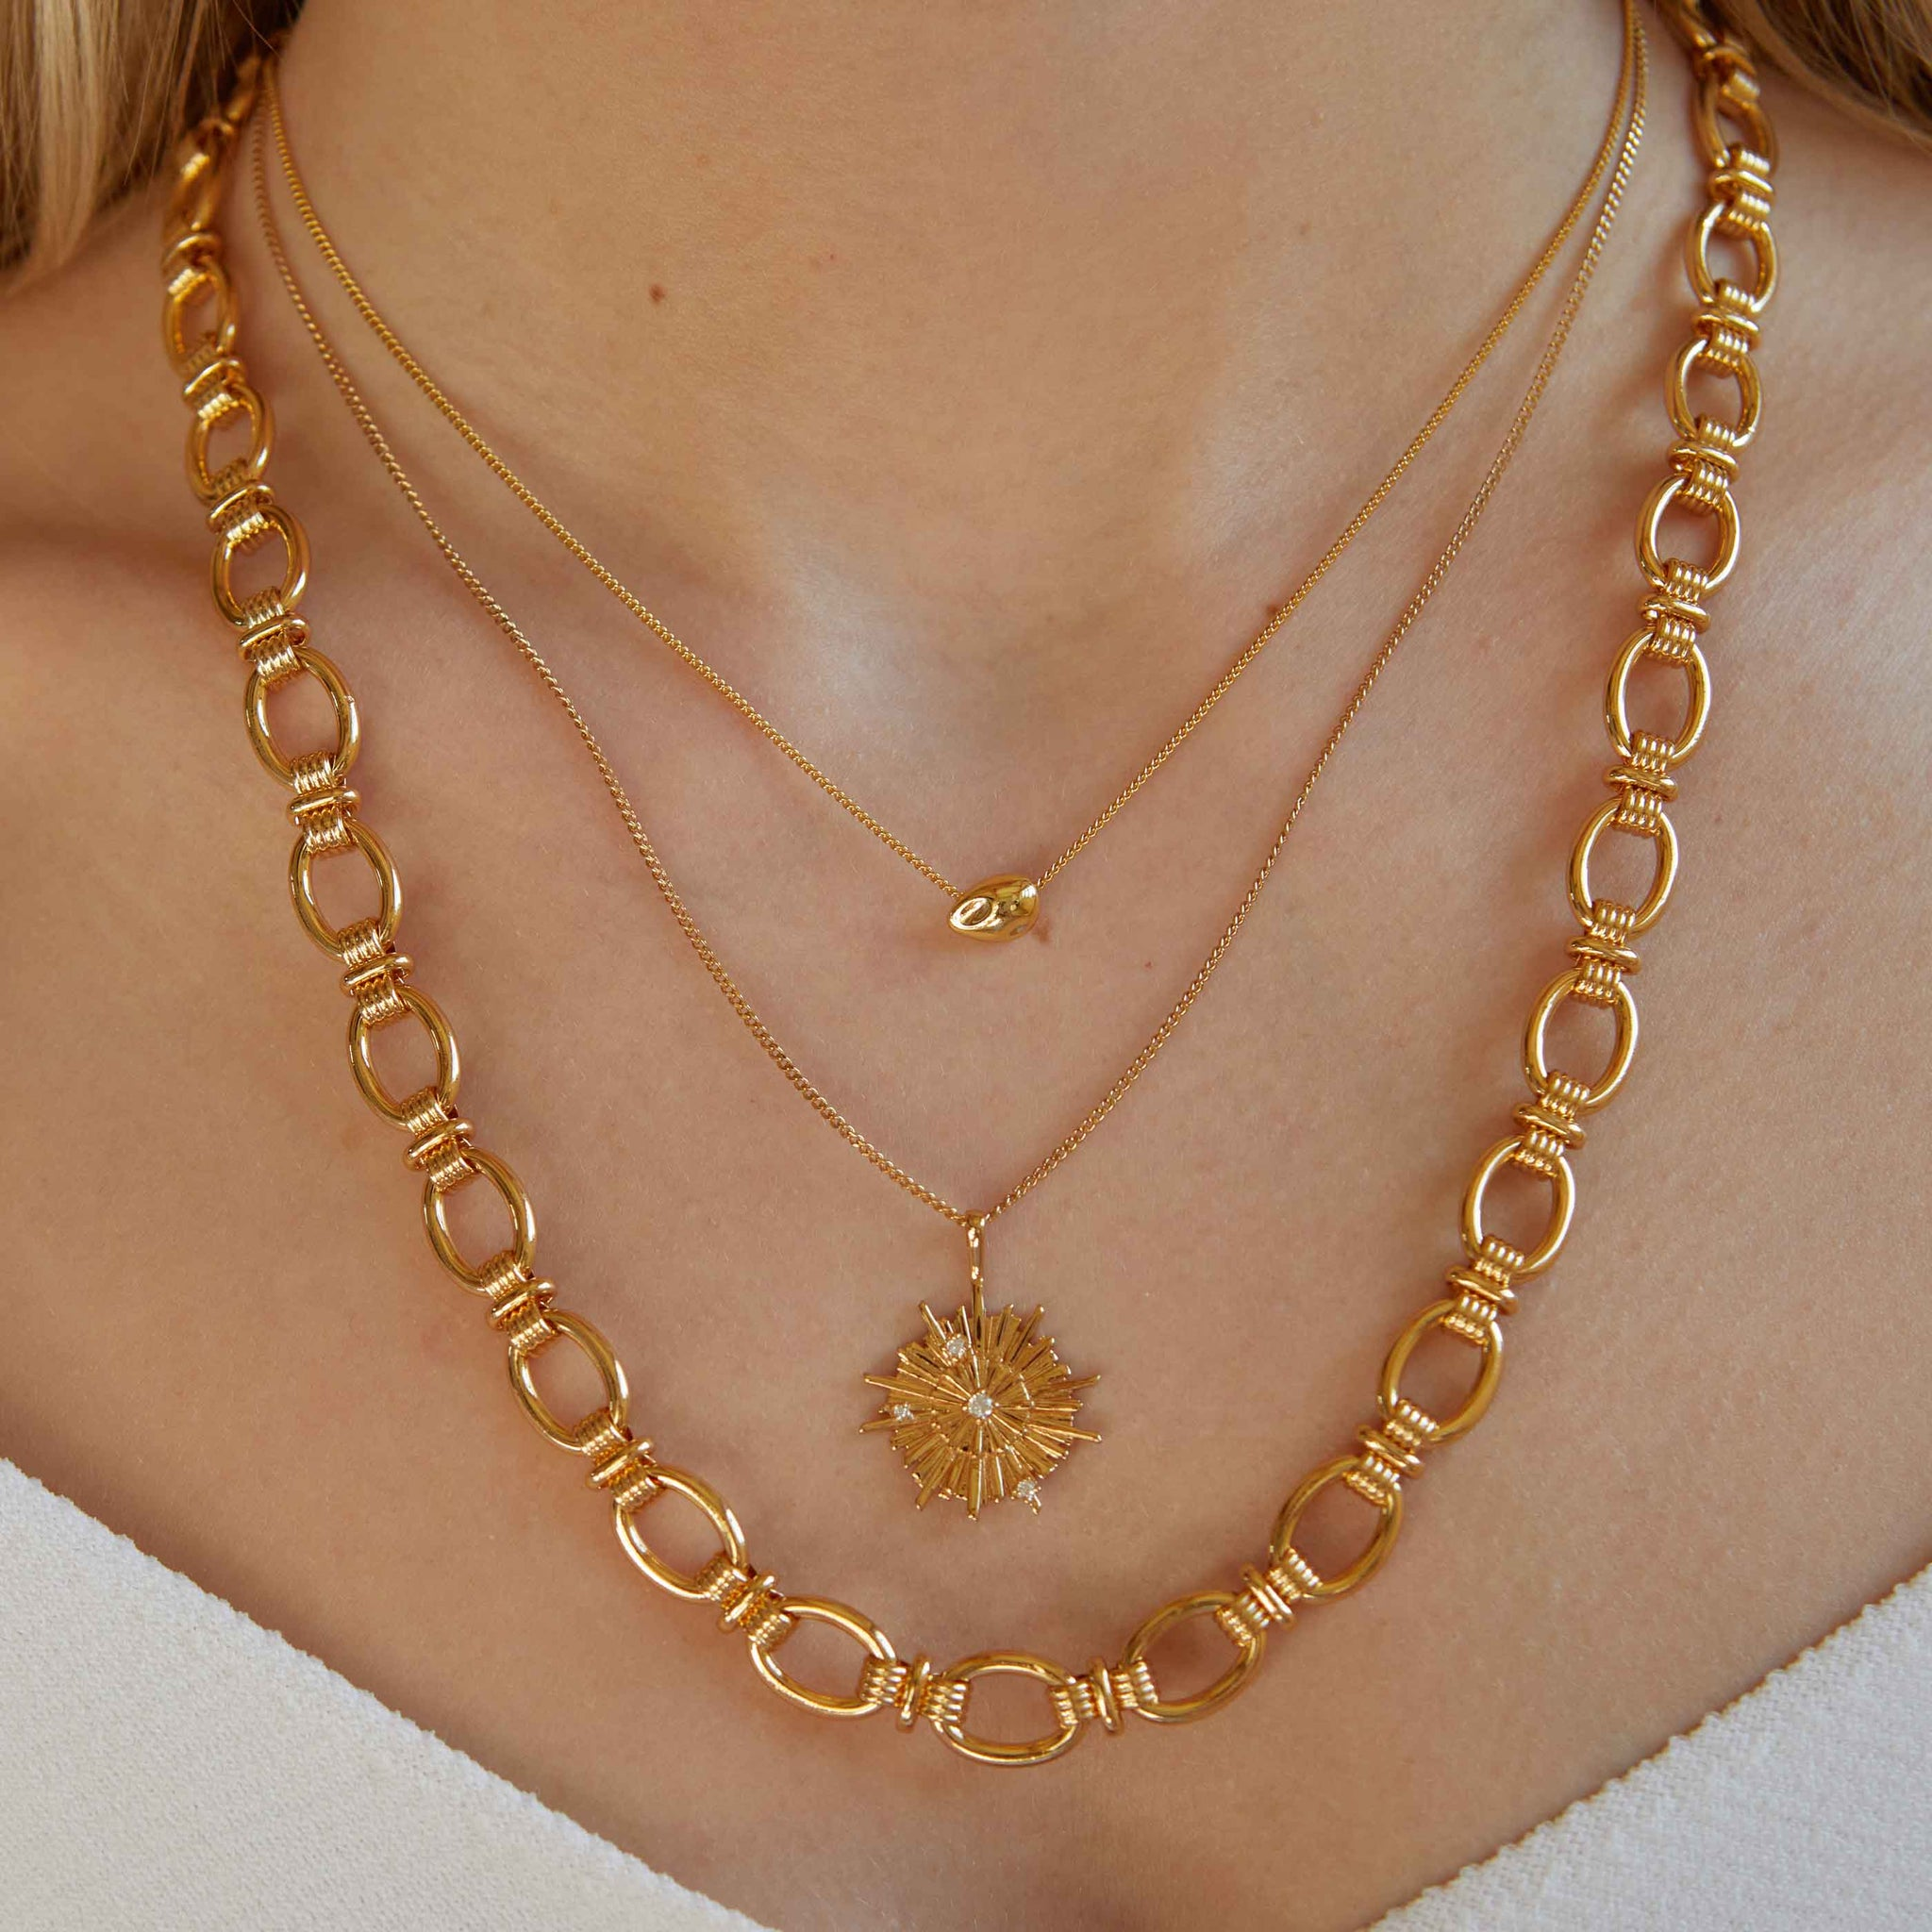 Ribbed Link Chain Necklace in Gold